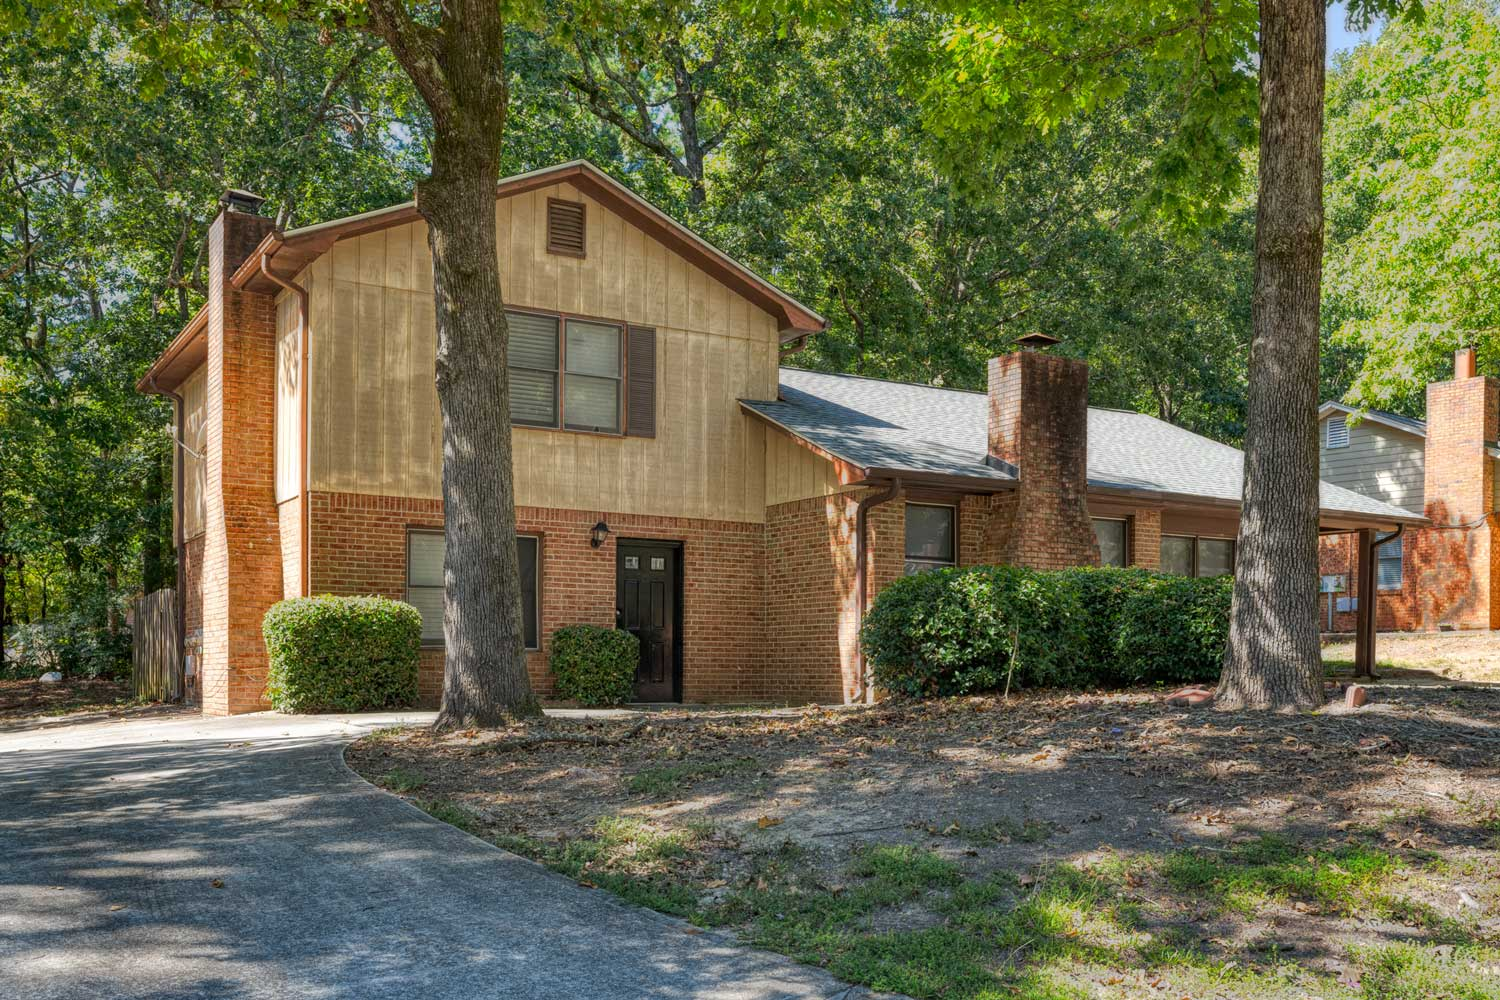 Family Friendly Apartments at Tall Oaks Apartments and Villas in Conyers, GA